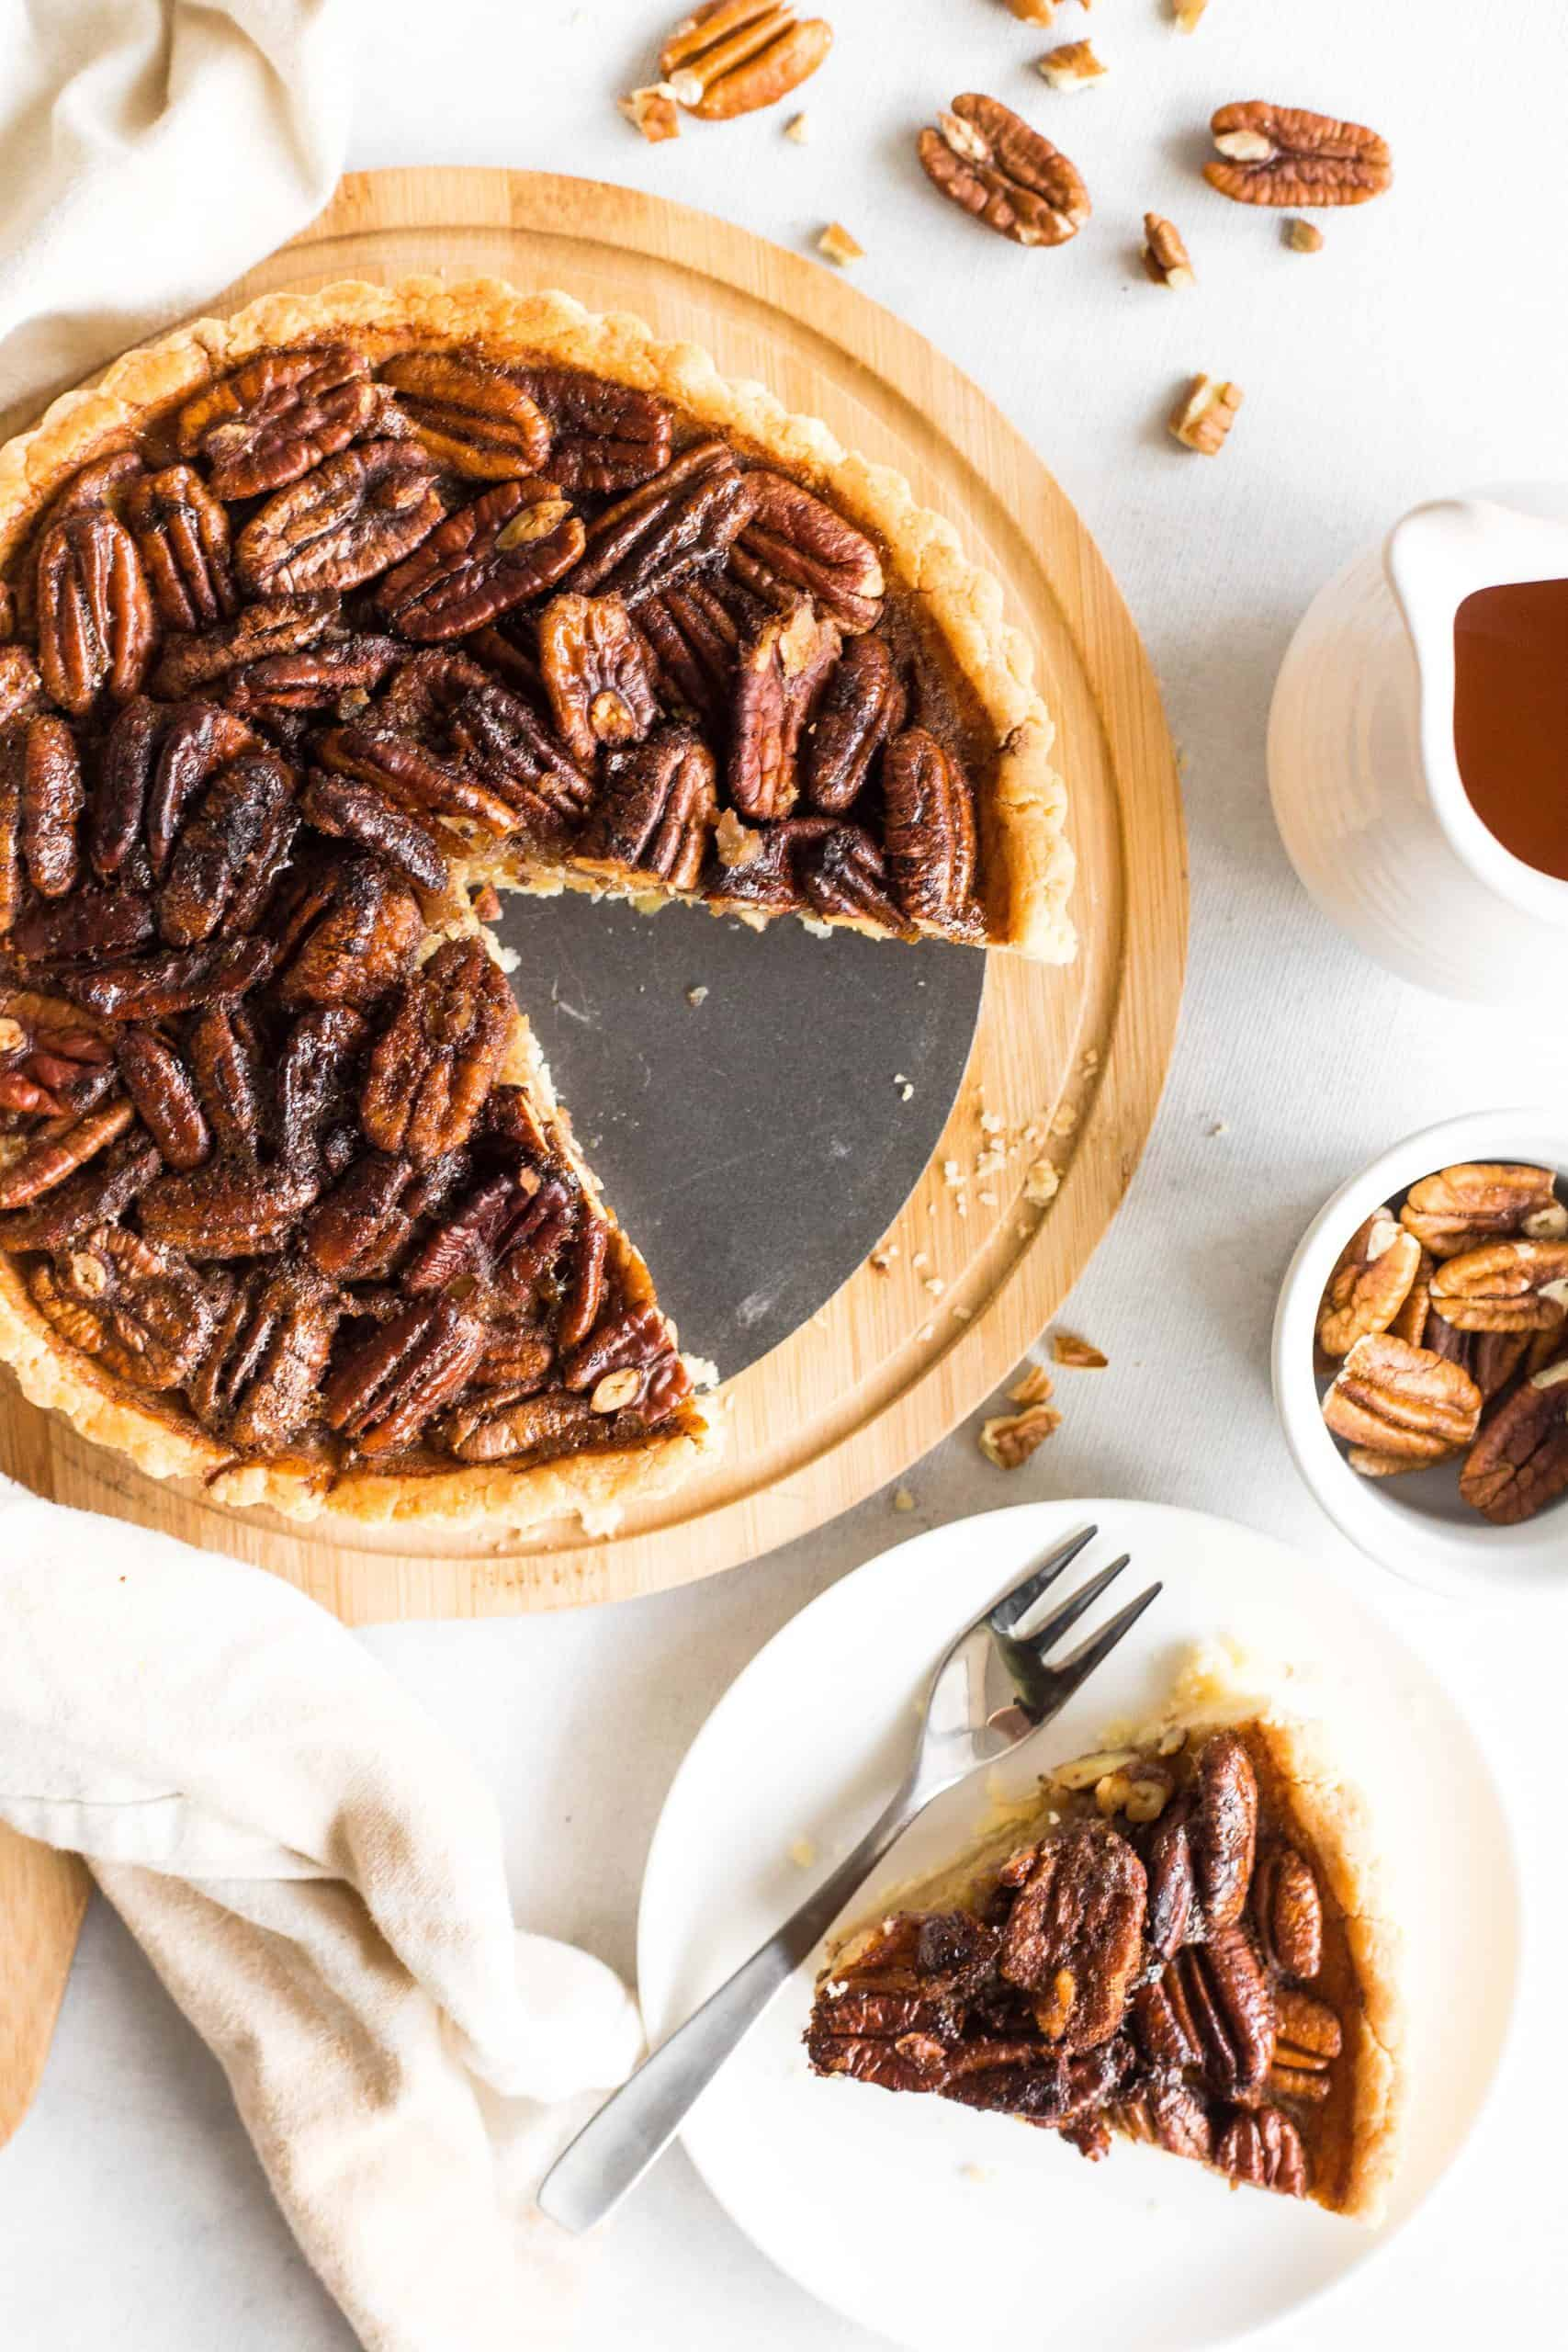 Whole pecan pie and a slice of pie on a white plate.